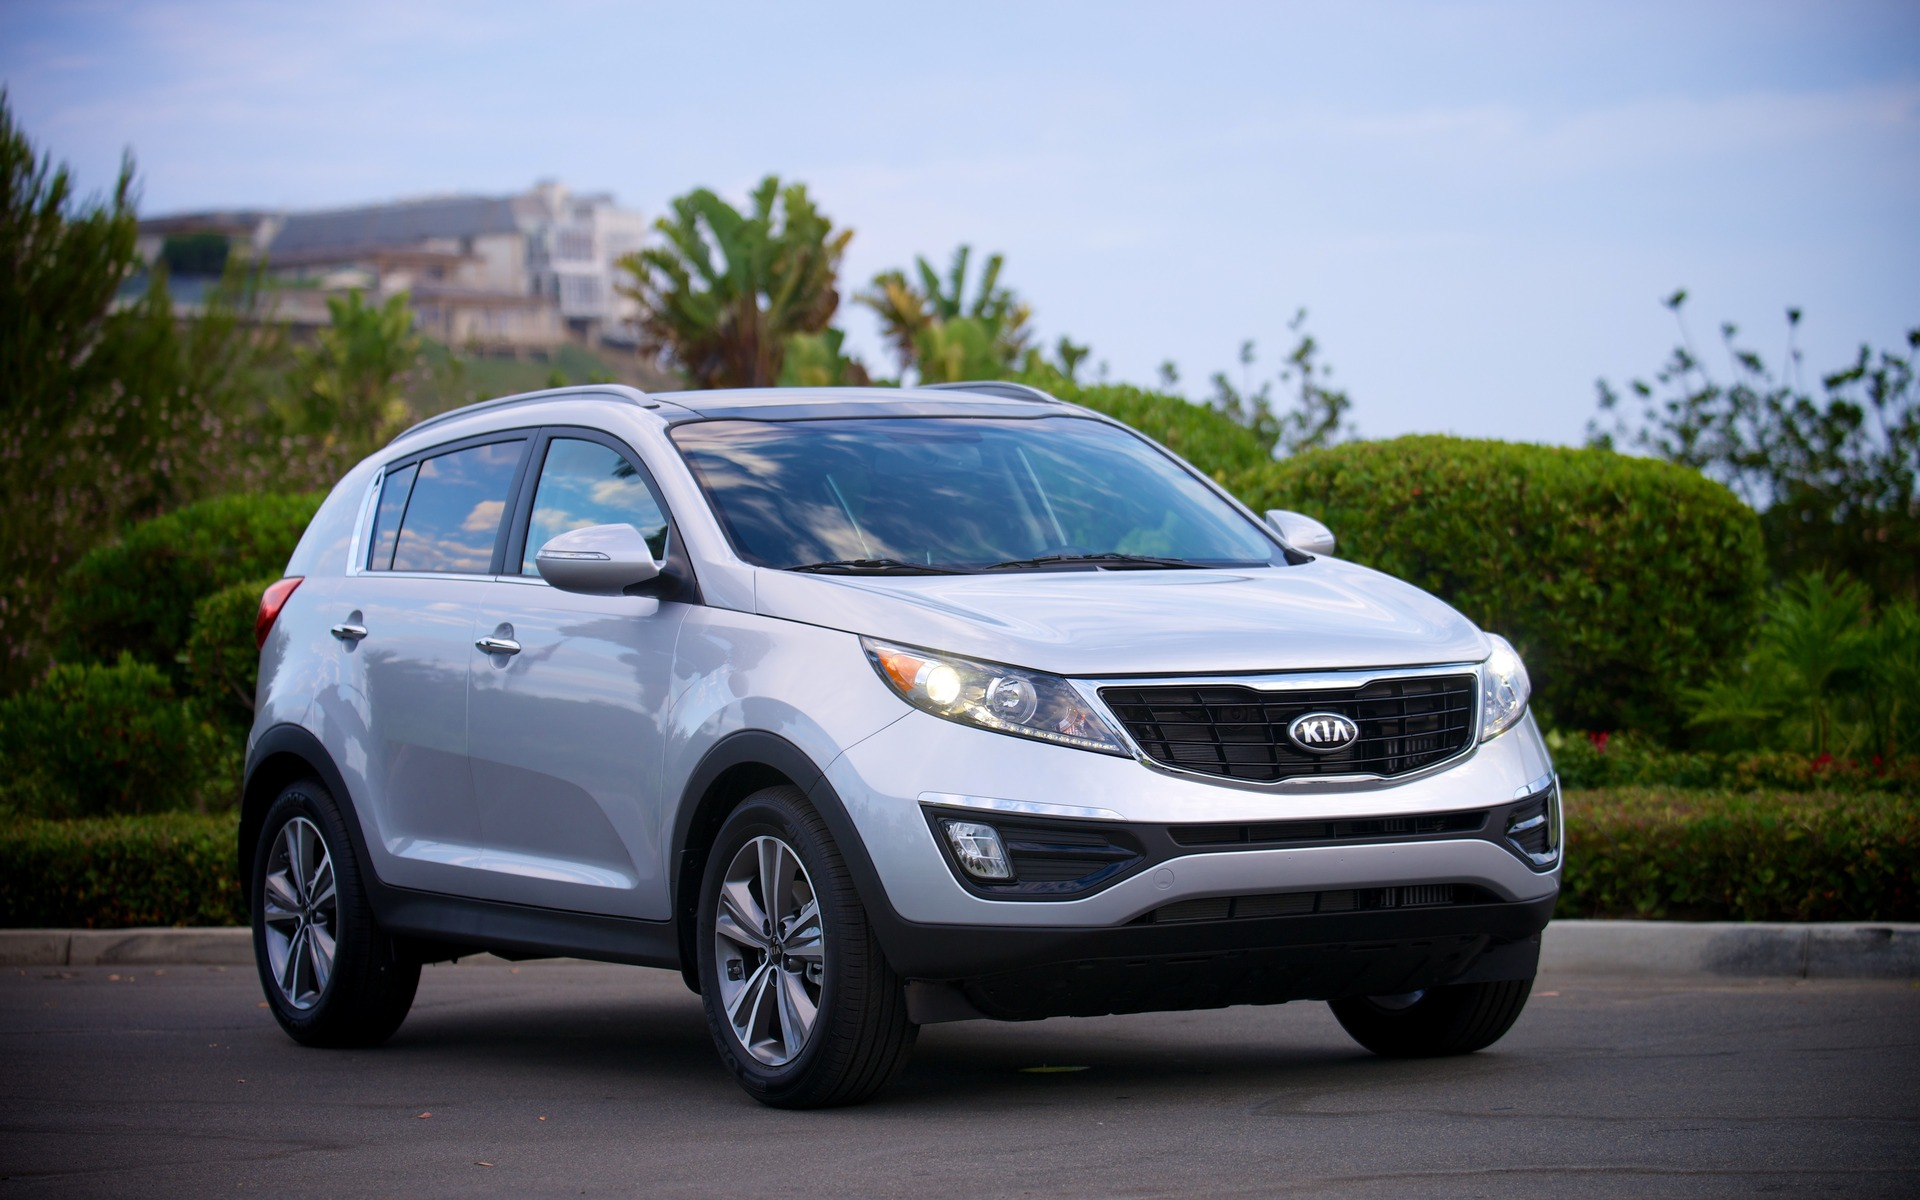 kia and reviews small original sorento s review driver car suv photo